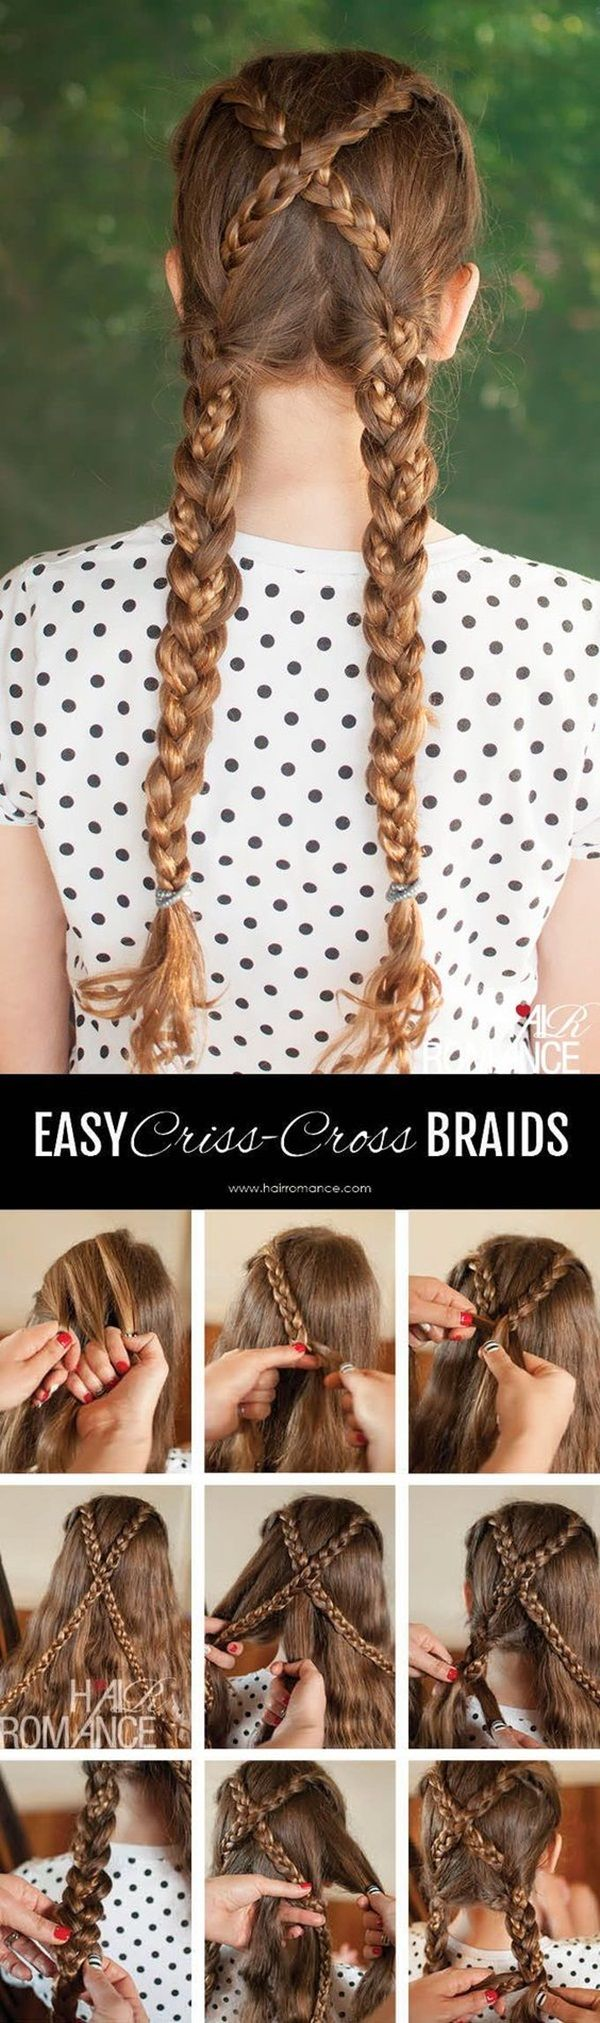 Check out these great hair care tips tumba pinterest easy